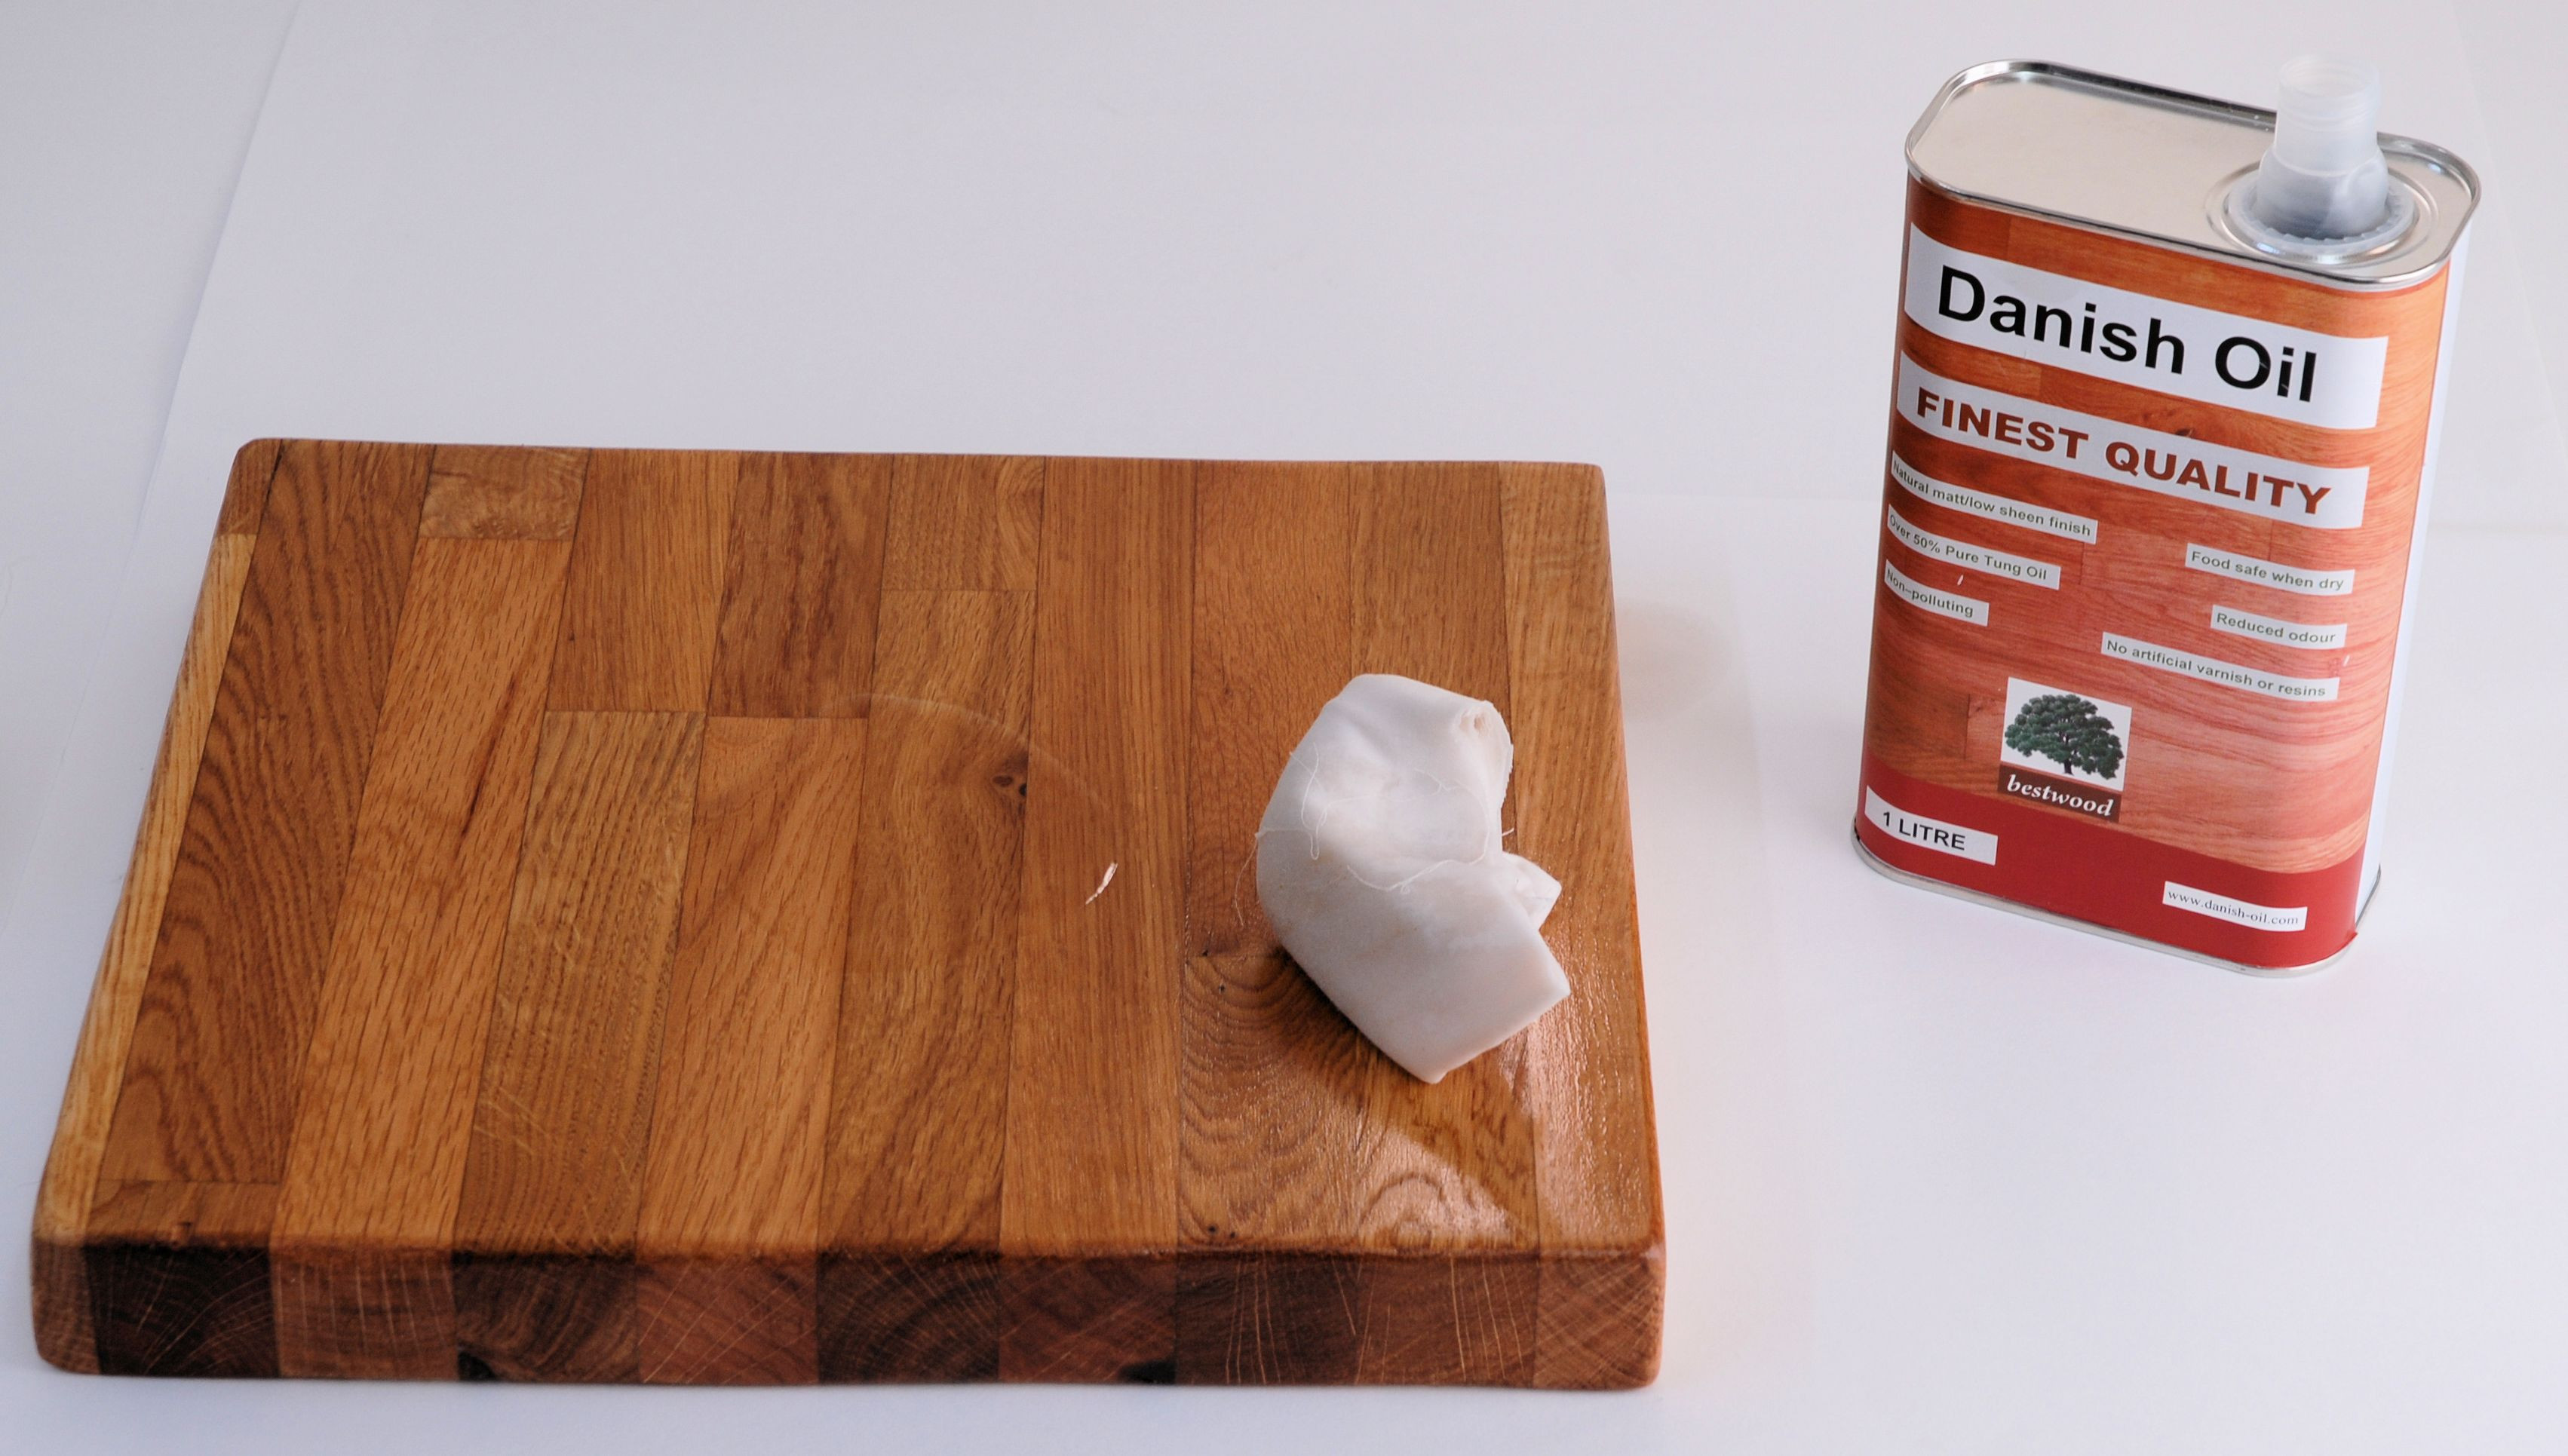 hardwood floor lacquer finish of how to apply danish oildanish oil com for second application first pass